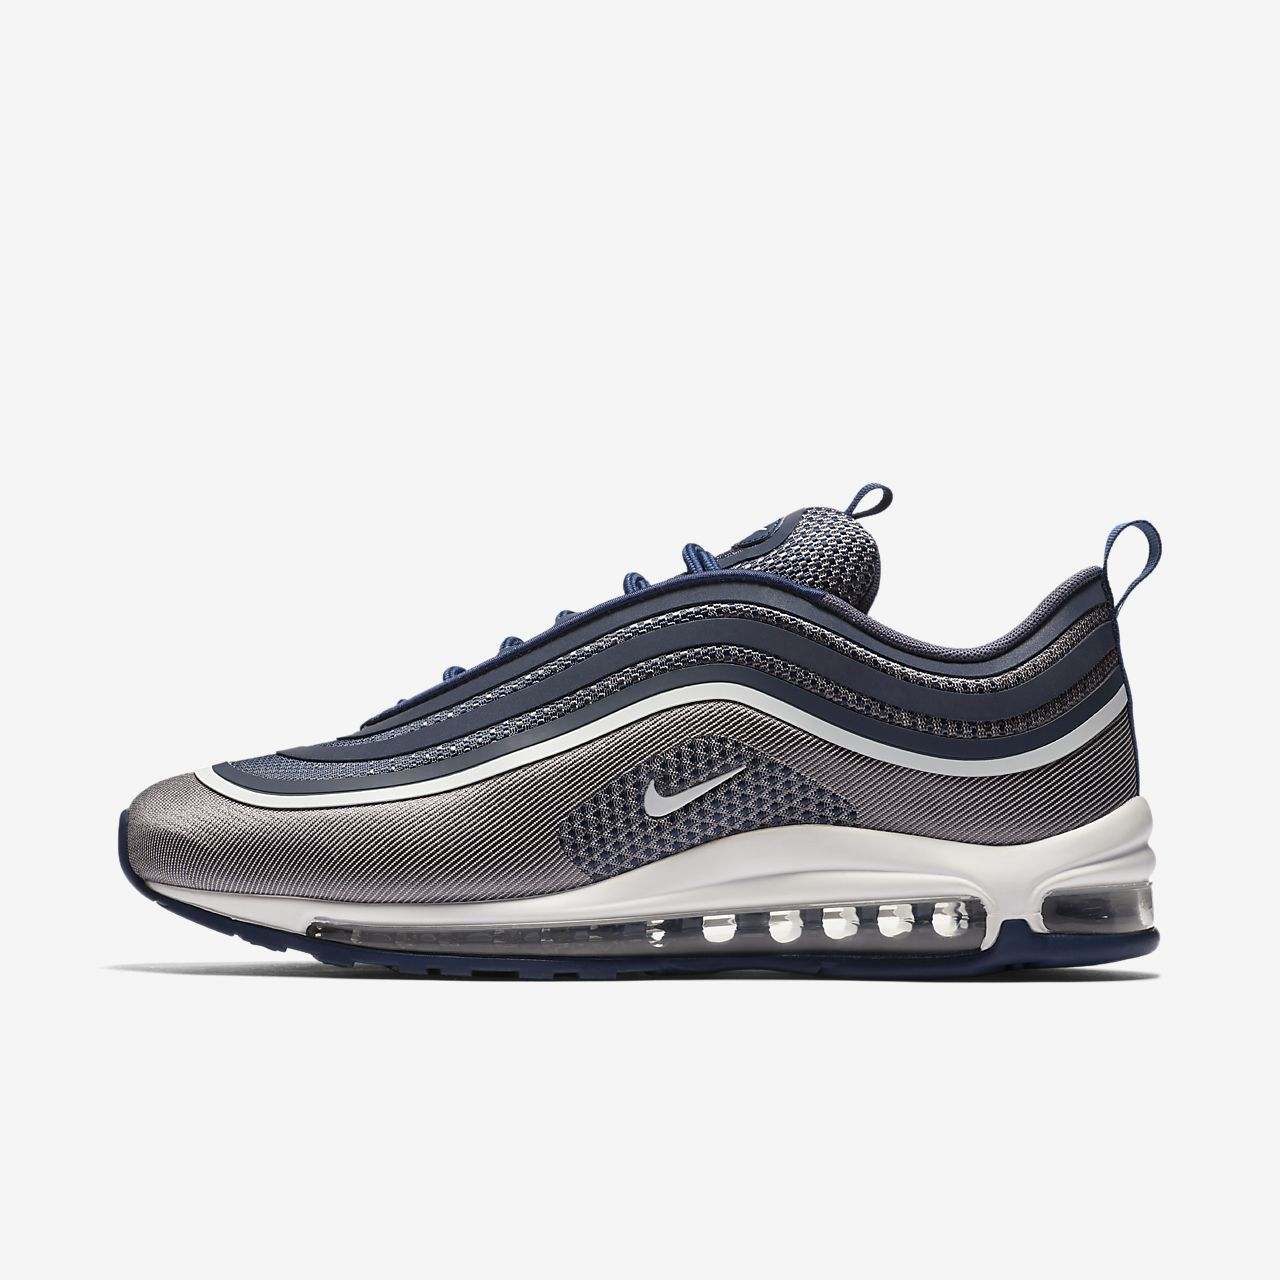 Nike Air Max 97 Premium 'Light Pumice & Summit White' Release